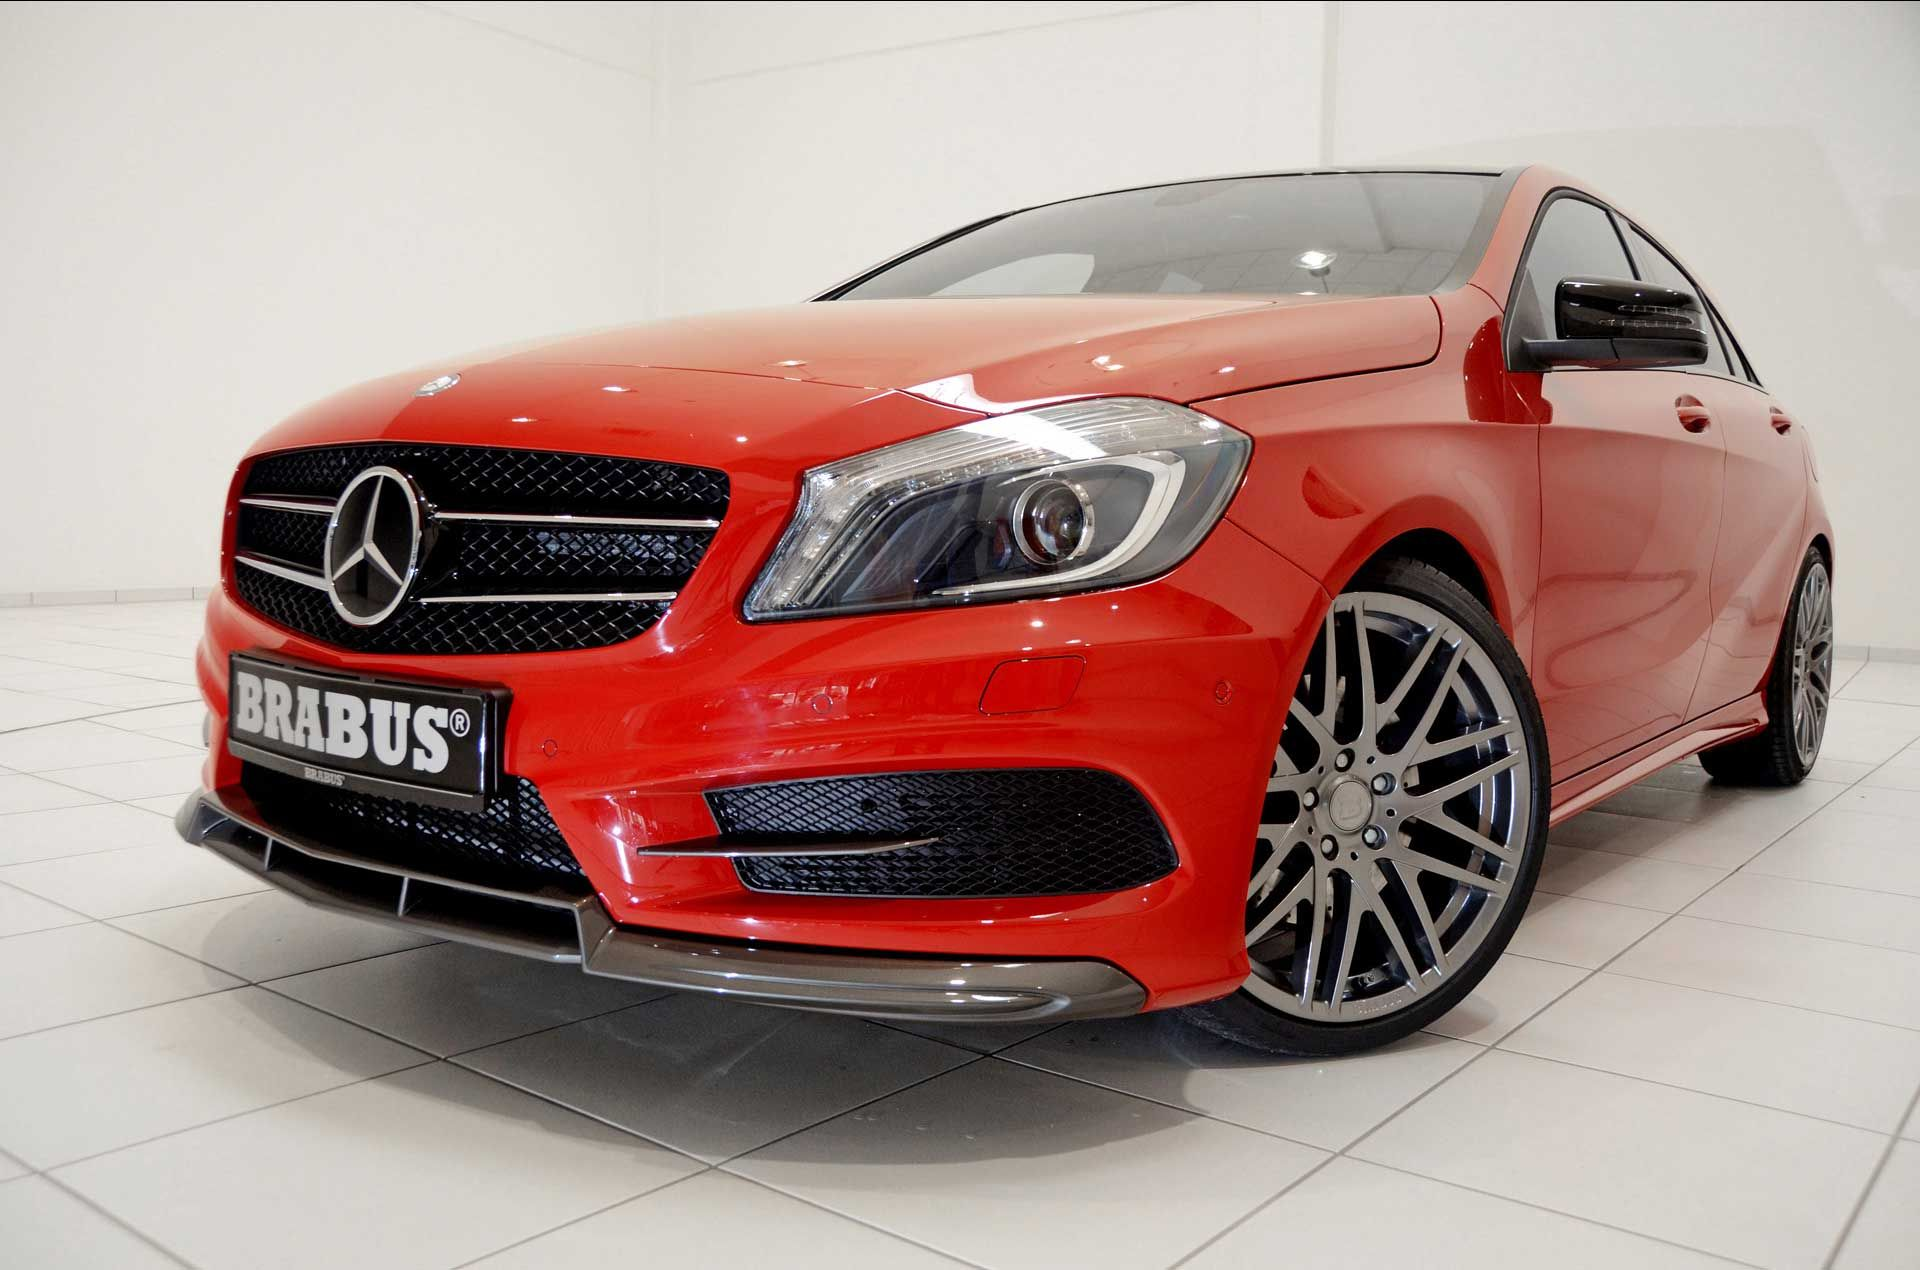 2012 Brabus Mercedes-Benz A-Class Price And Specs, Engine